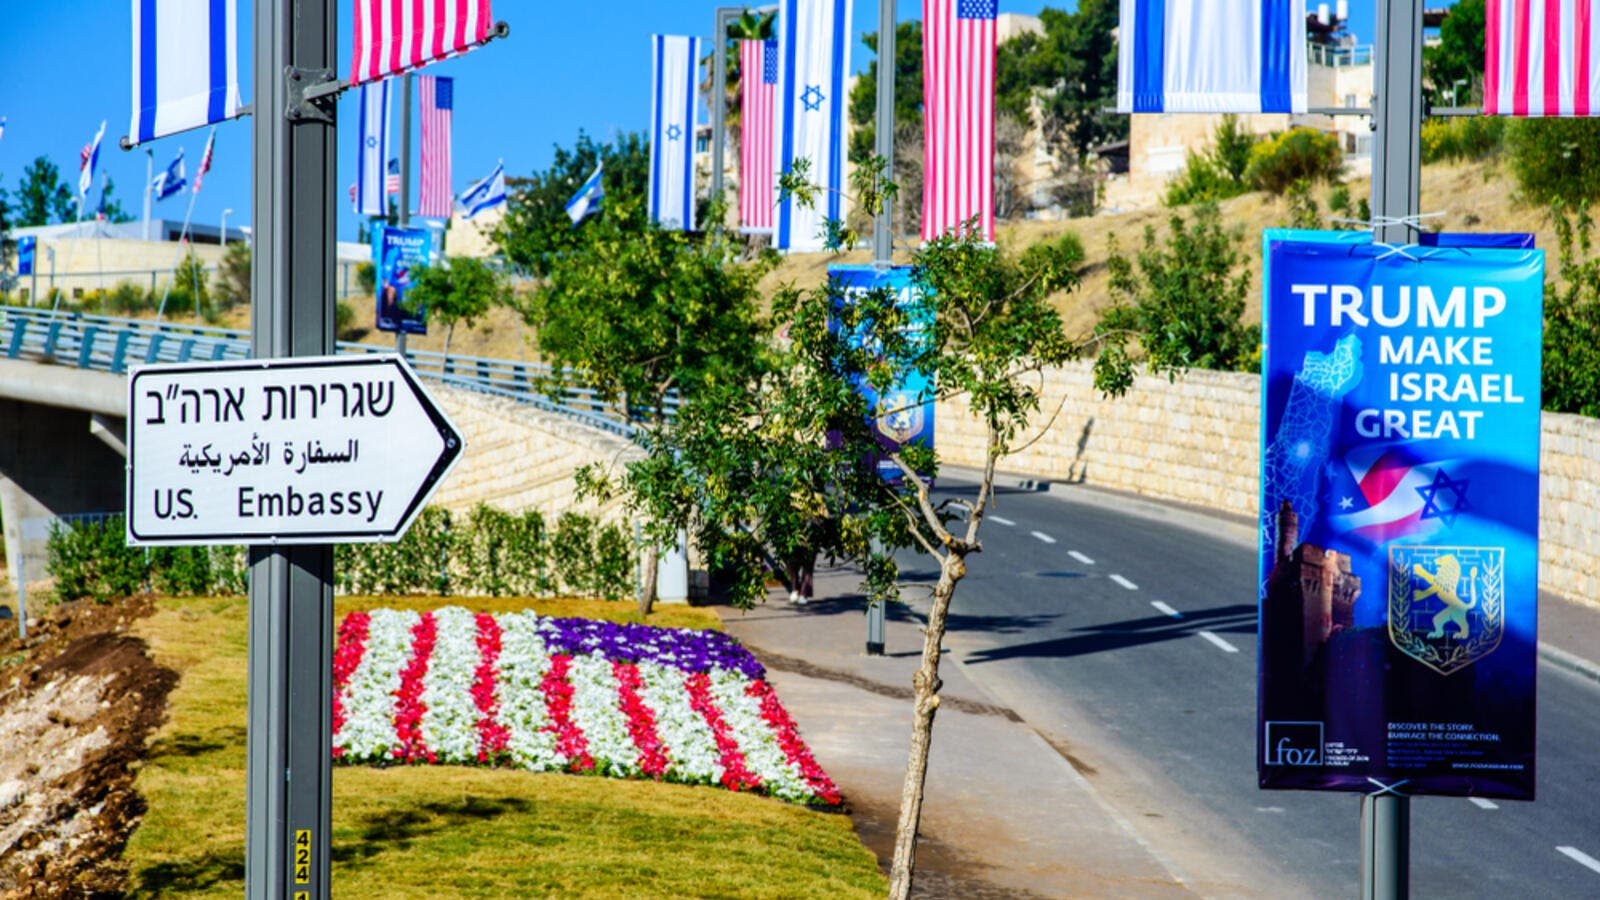 Street sign on a road towards a new US embassy in Jerusalem, adorned with American and Israeli flags (Shutterstock)